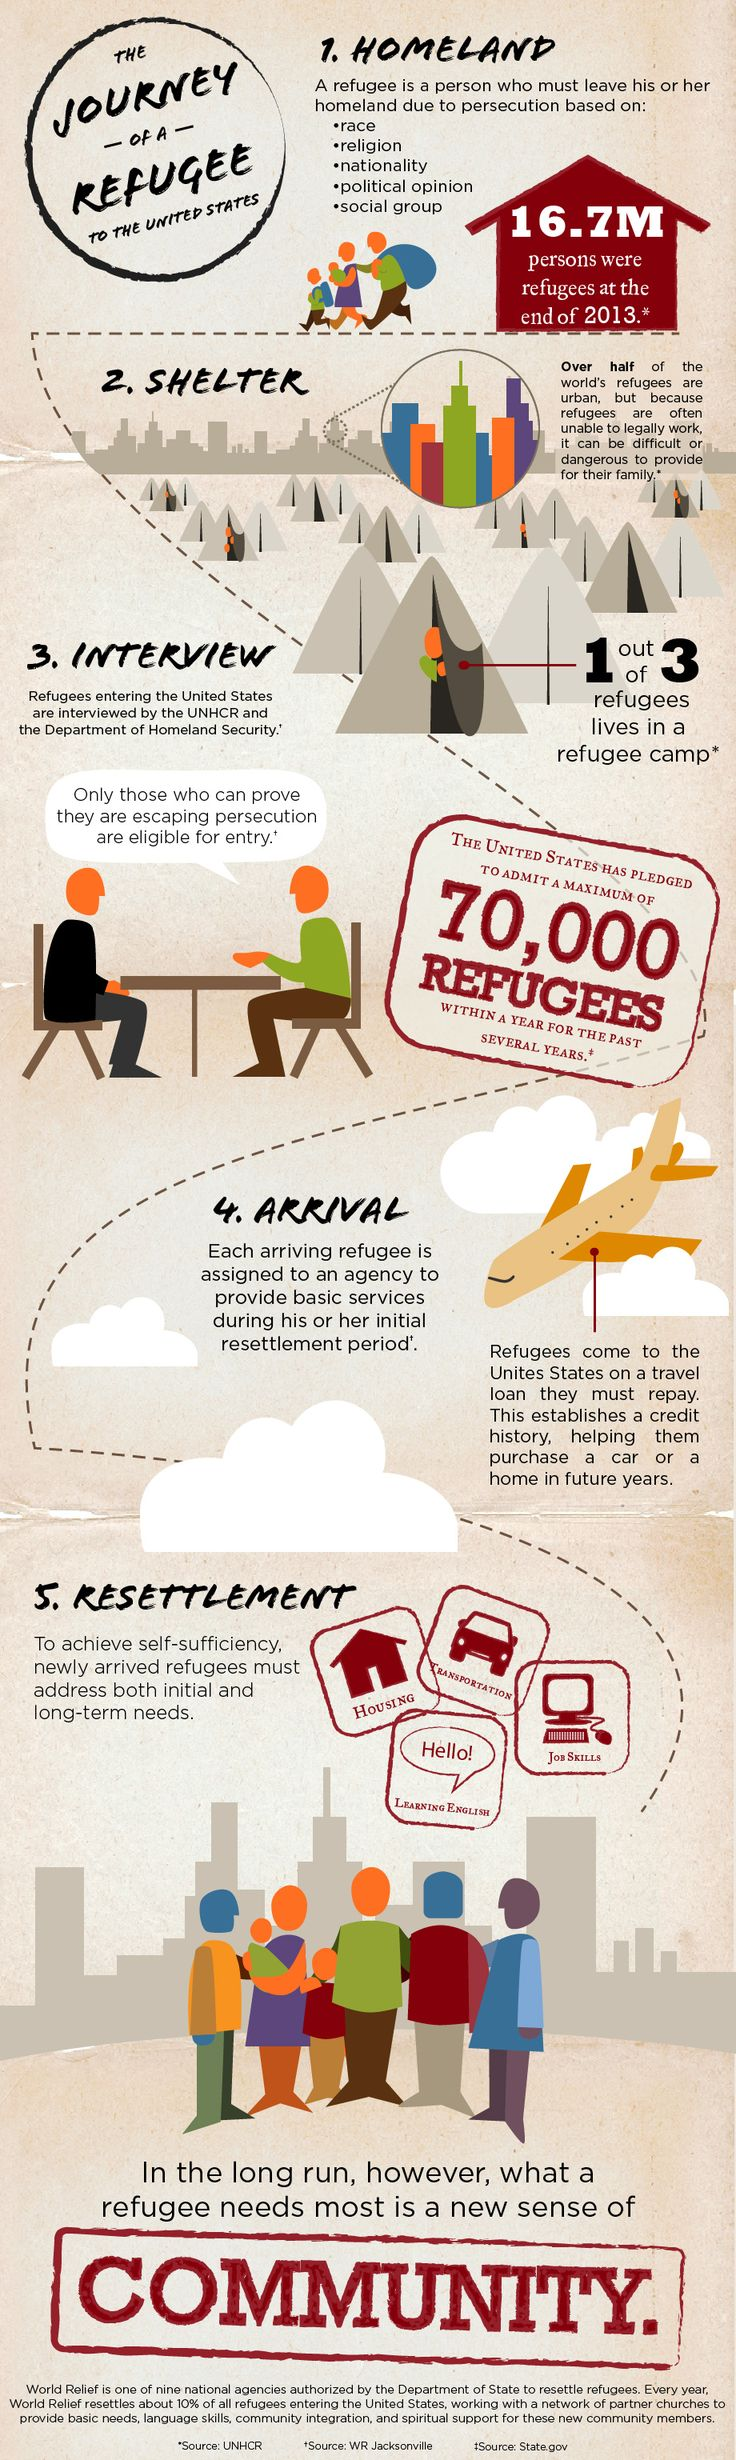 World Relief's latest infographic on the Journey of a Refugee.